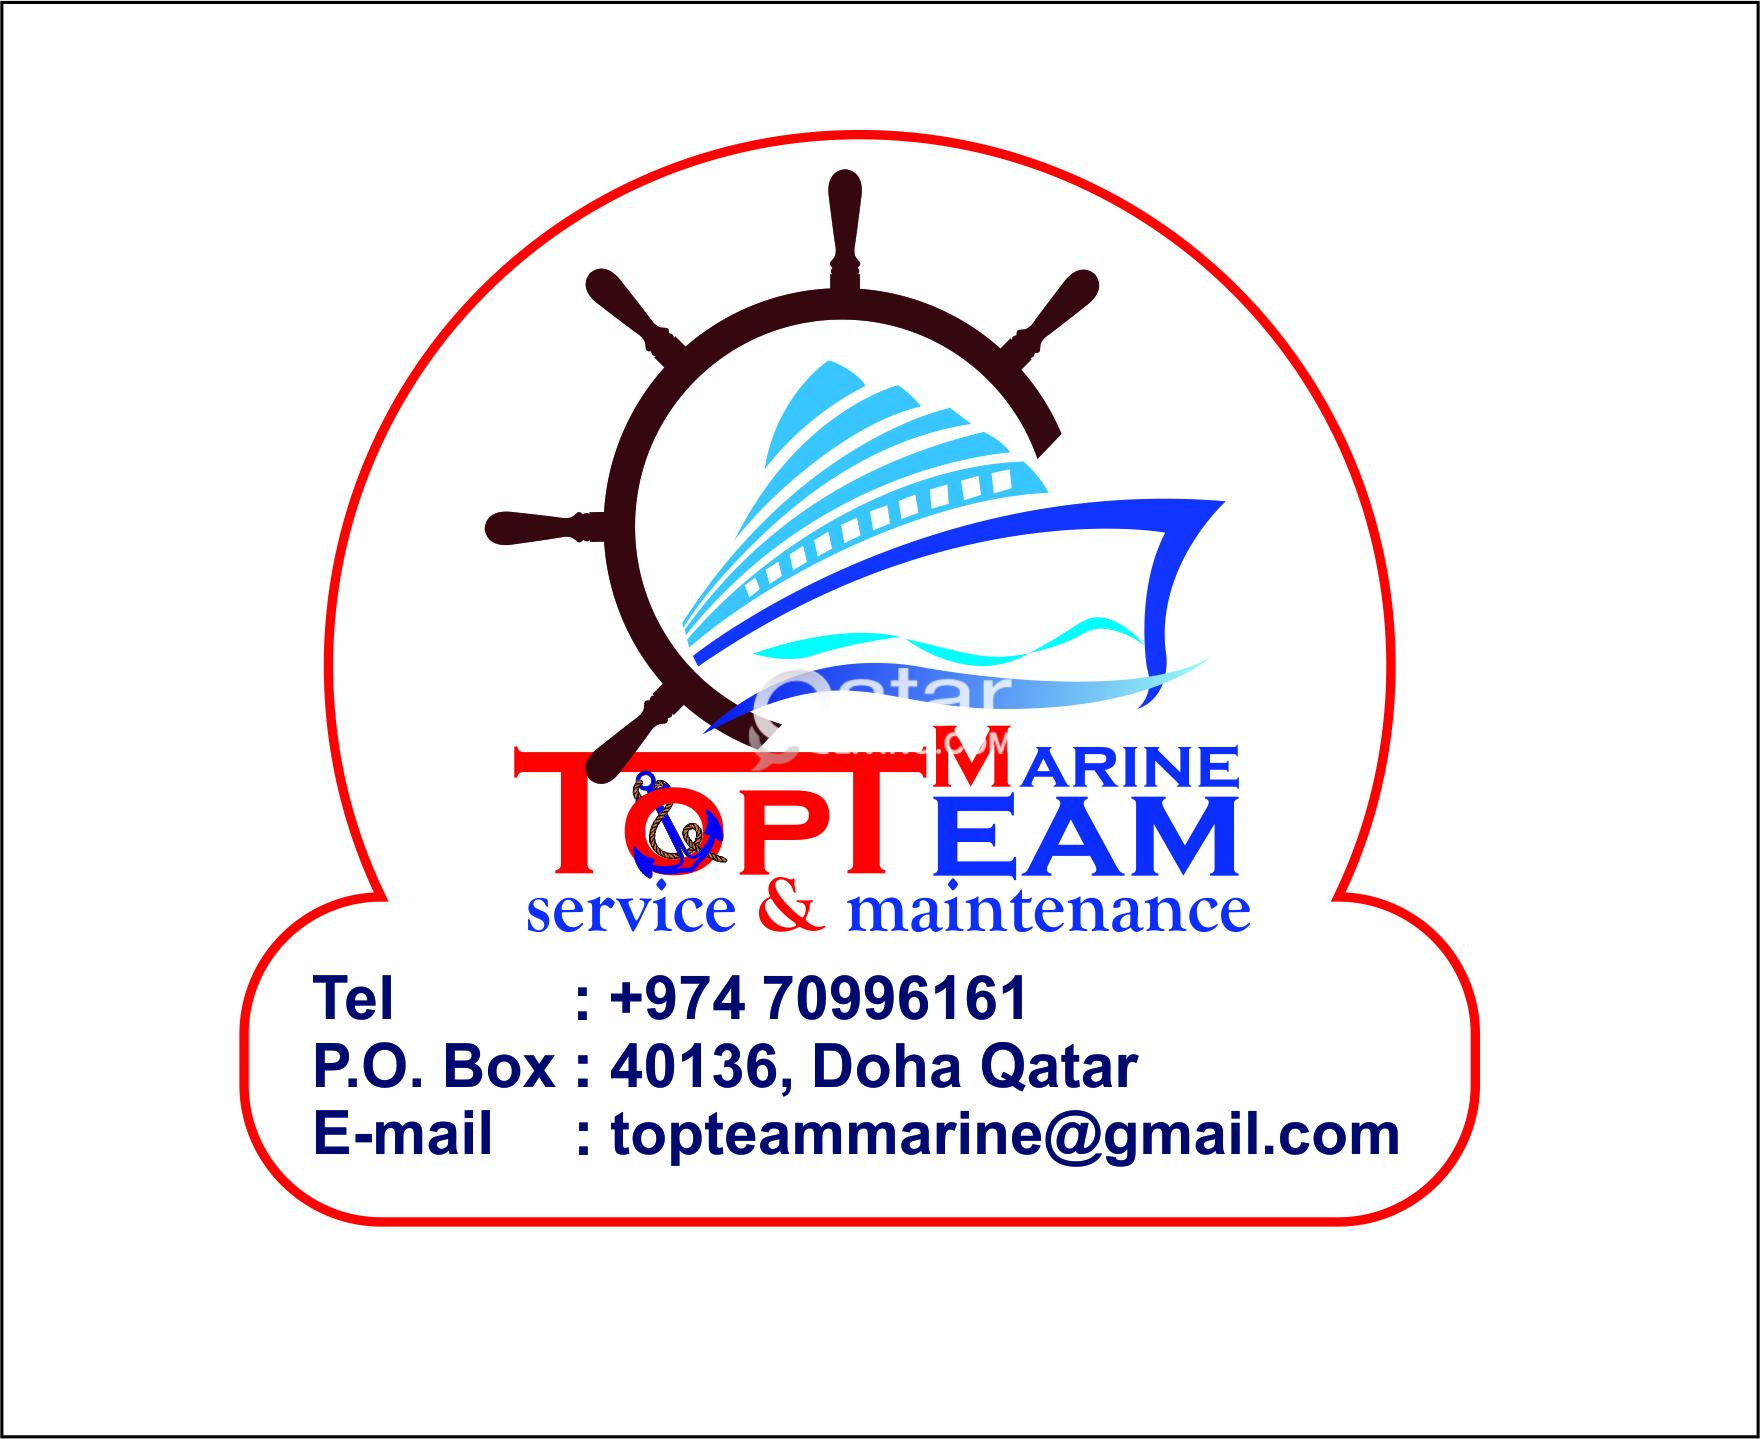 Top Team Marine maintenance service | Qatar Living